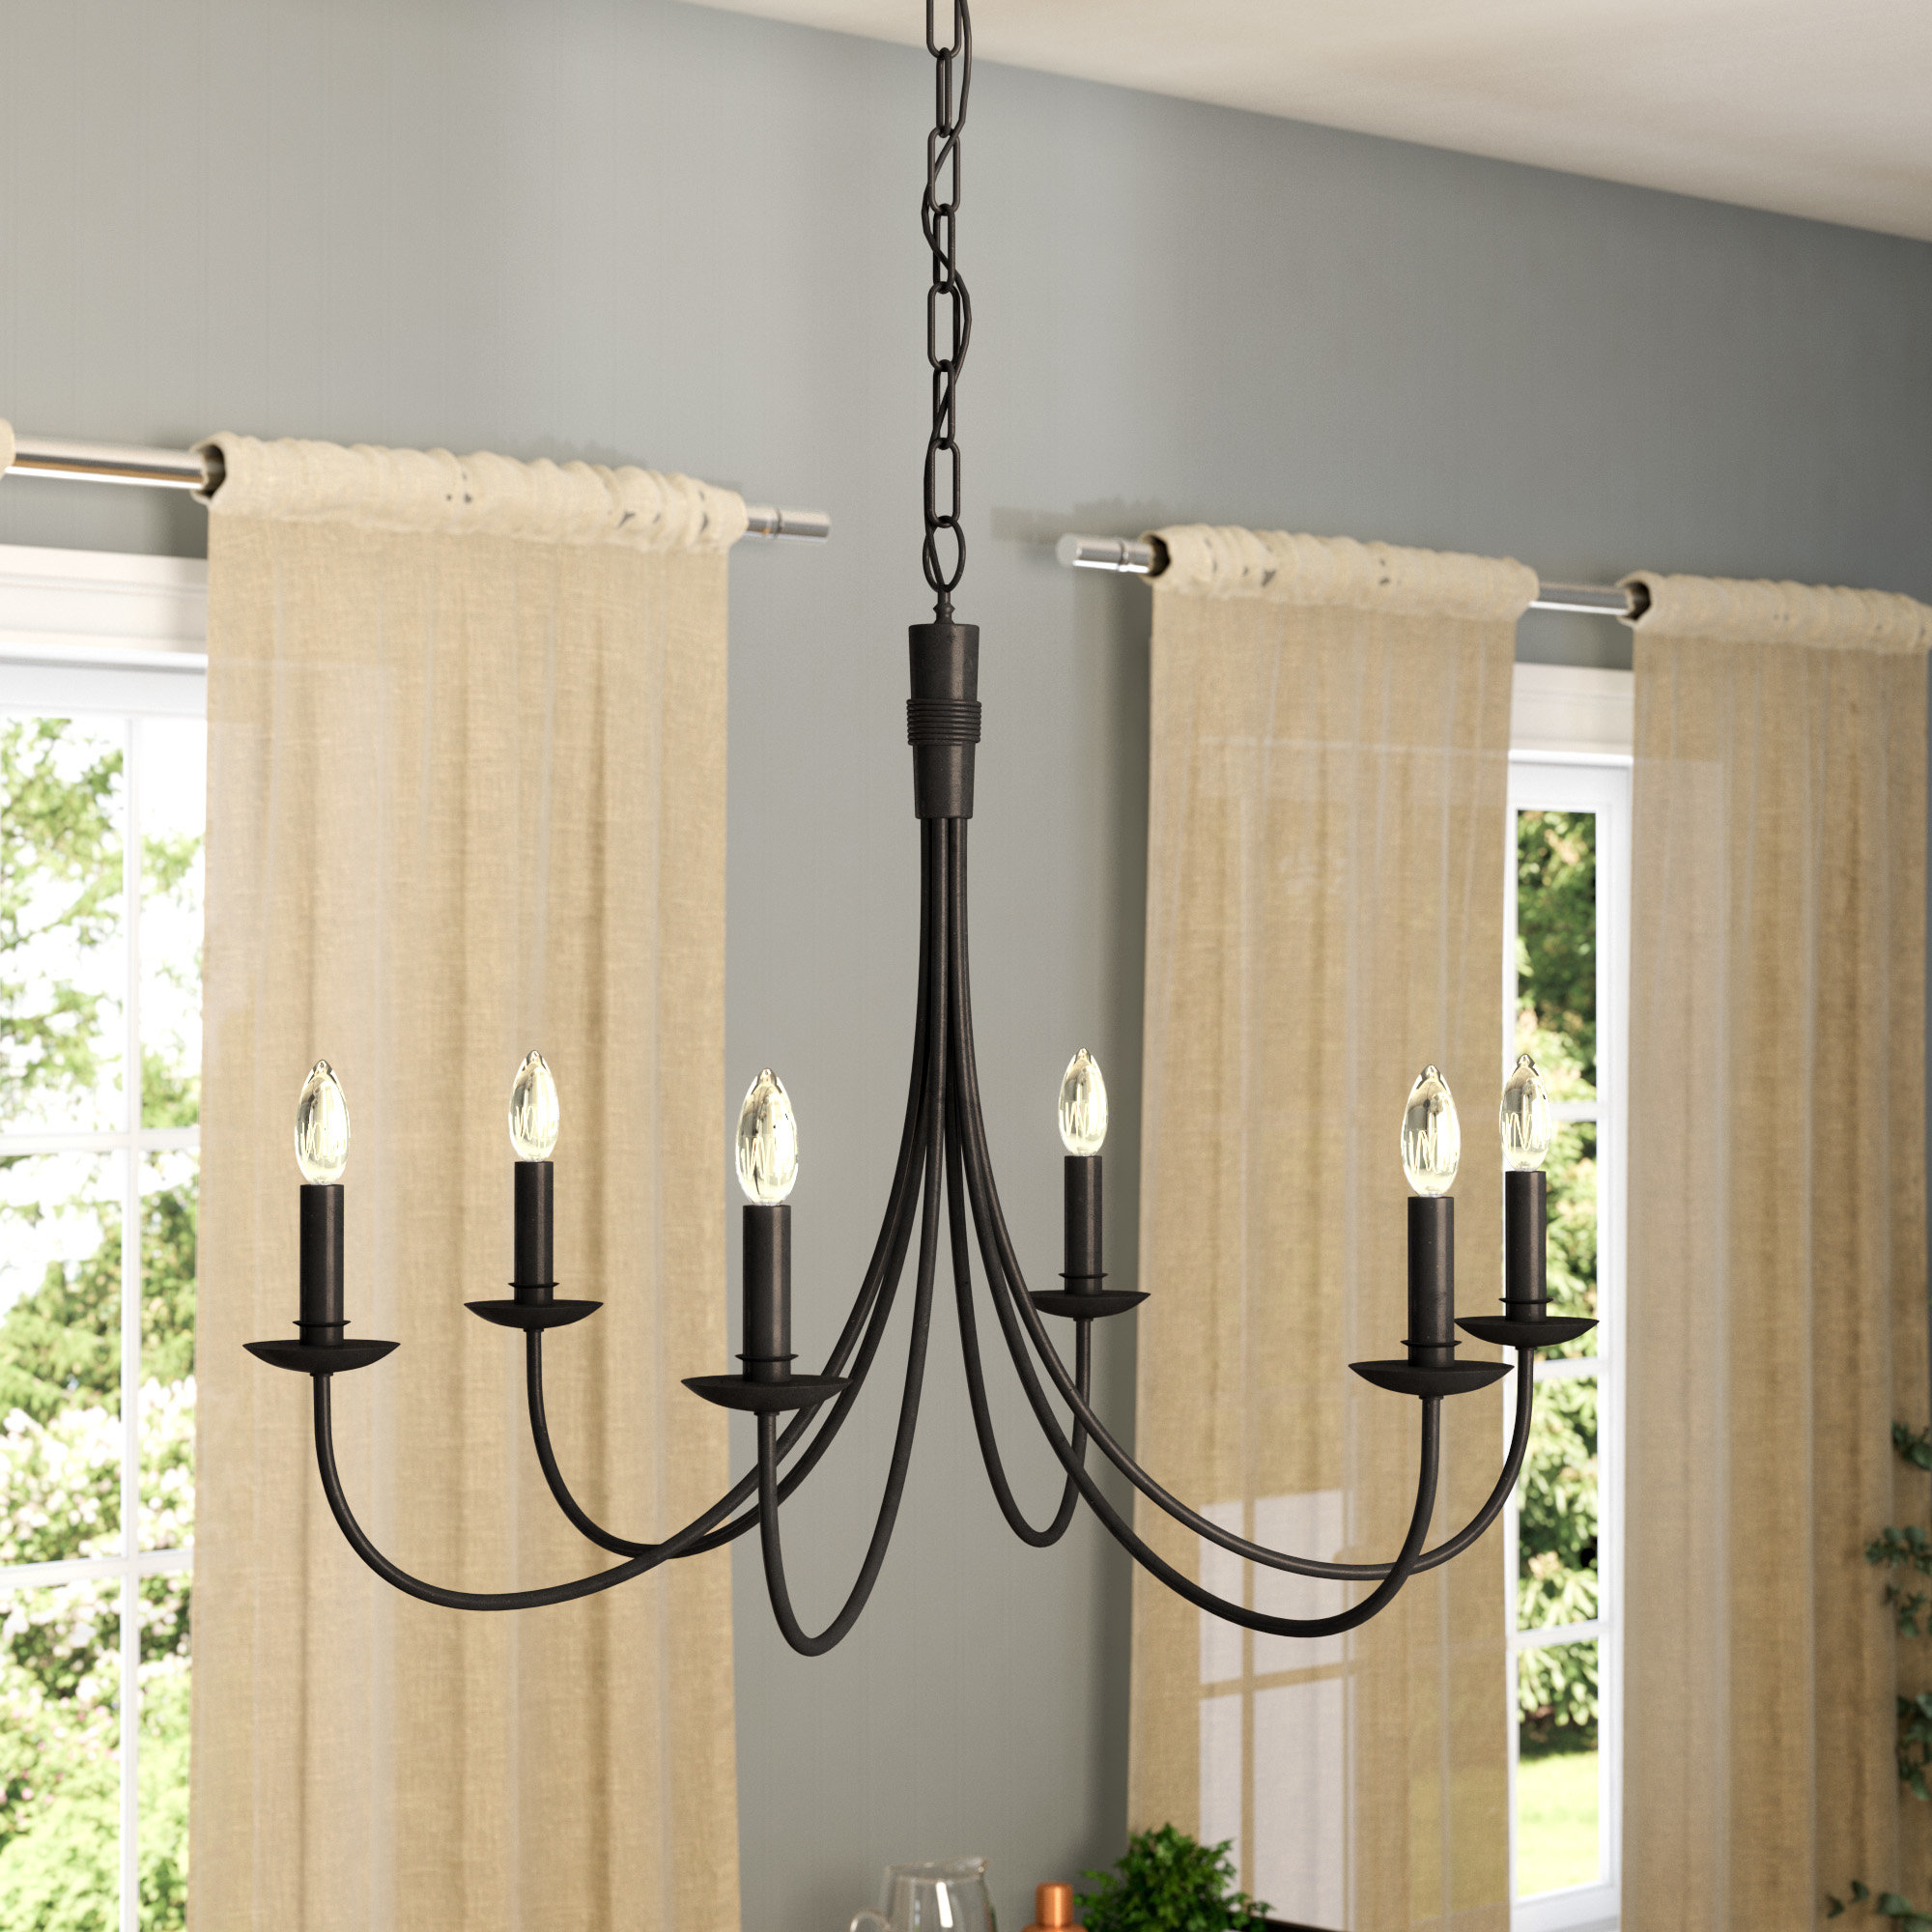 Trendy Souders 6 Light Candle Style Chandelier Within Diaz 6 Light Candle Style Chandeliers (View 10 of 25)